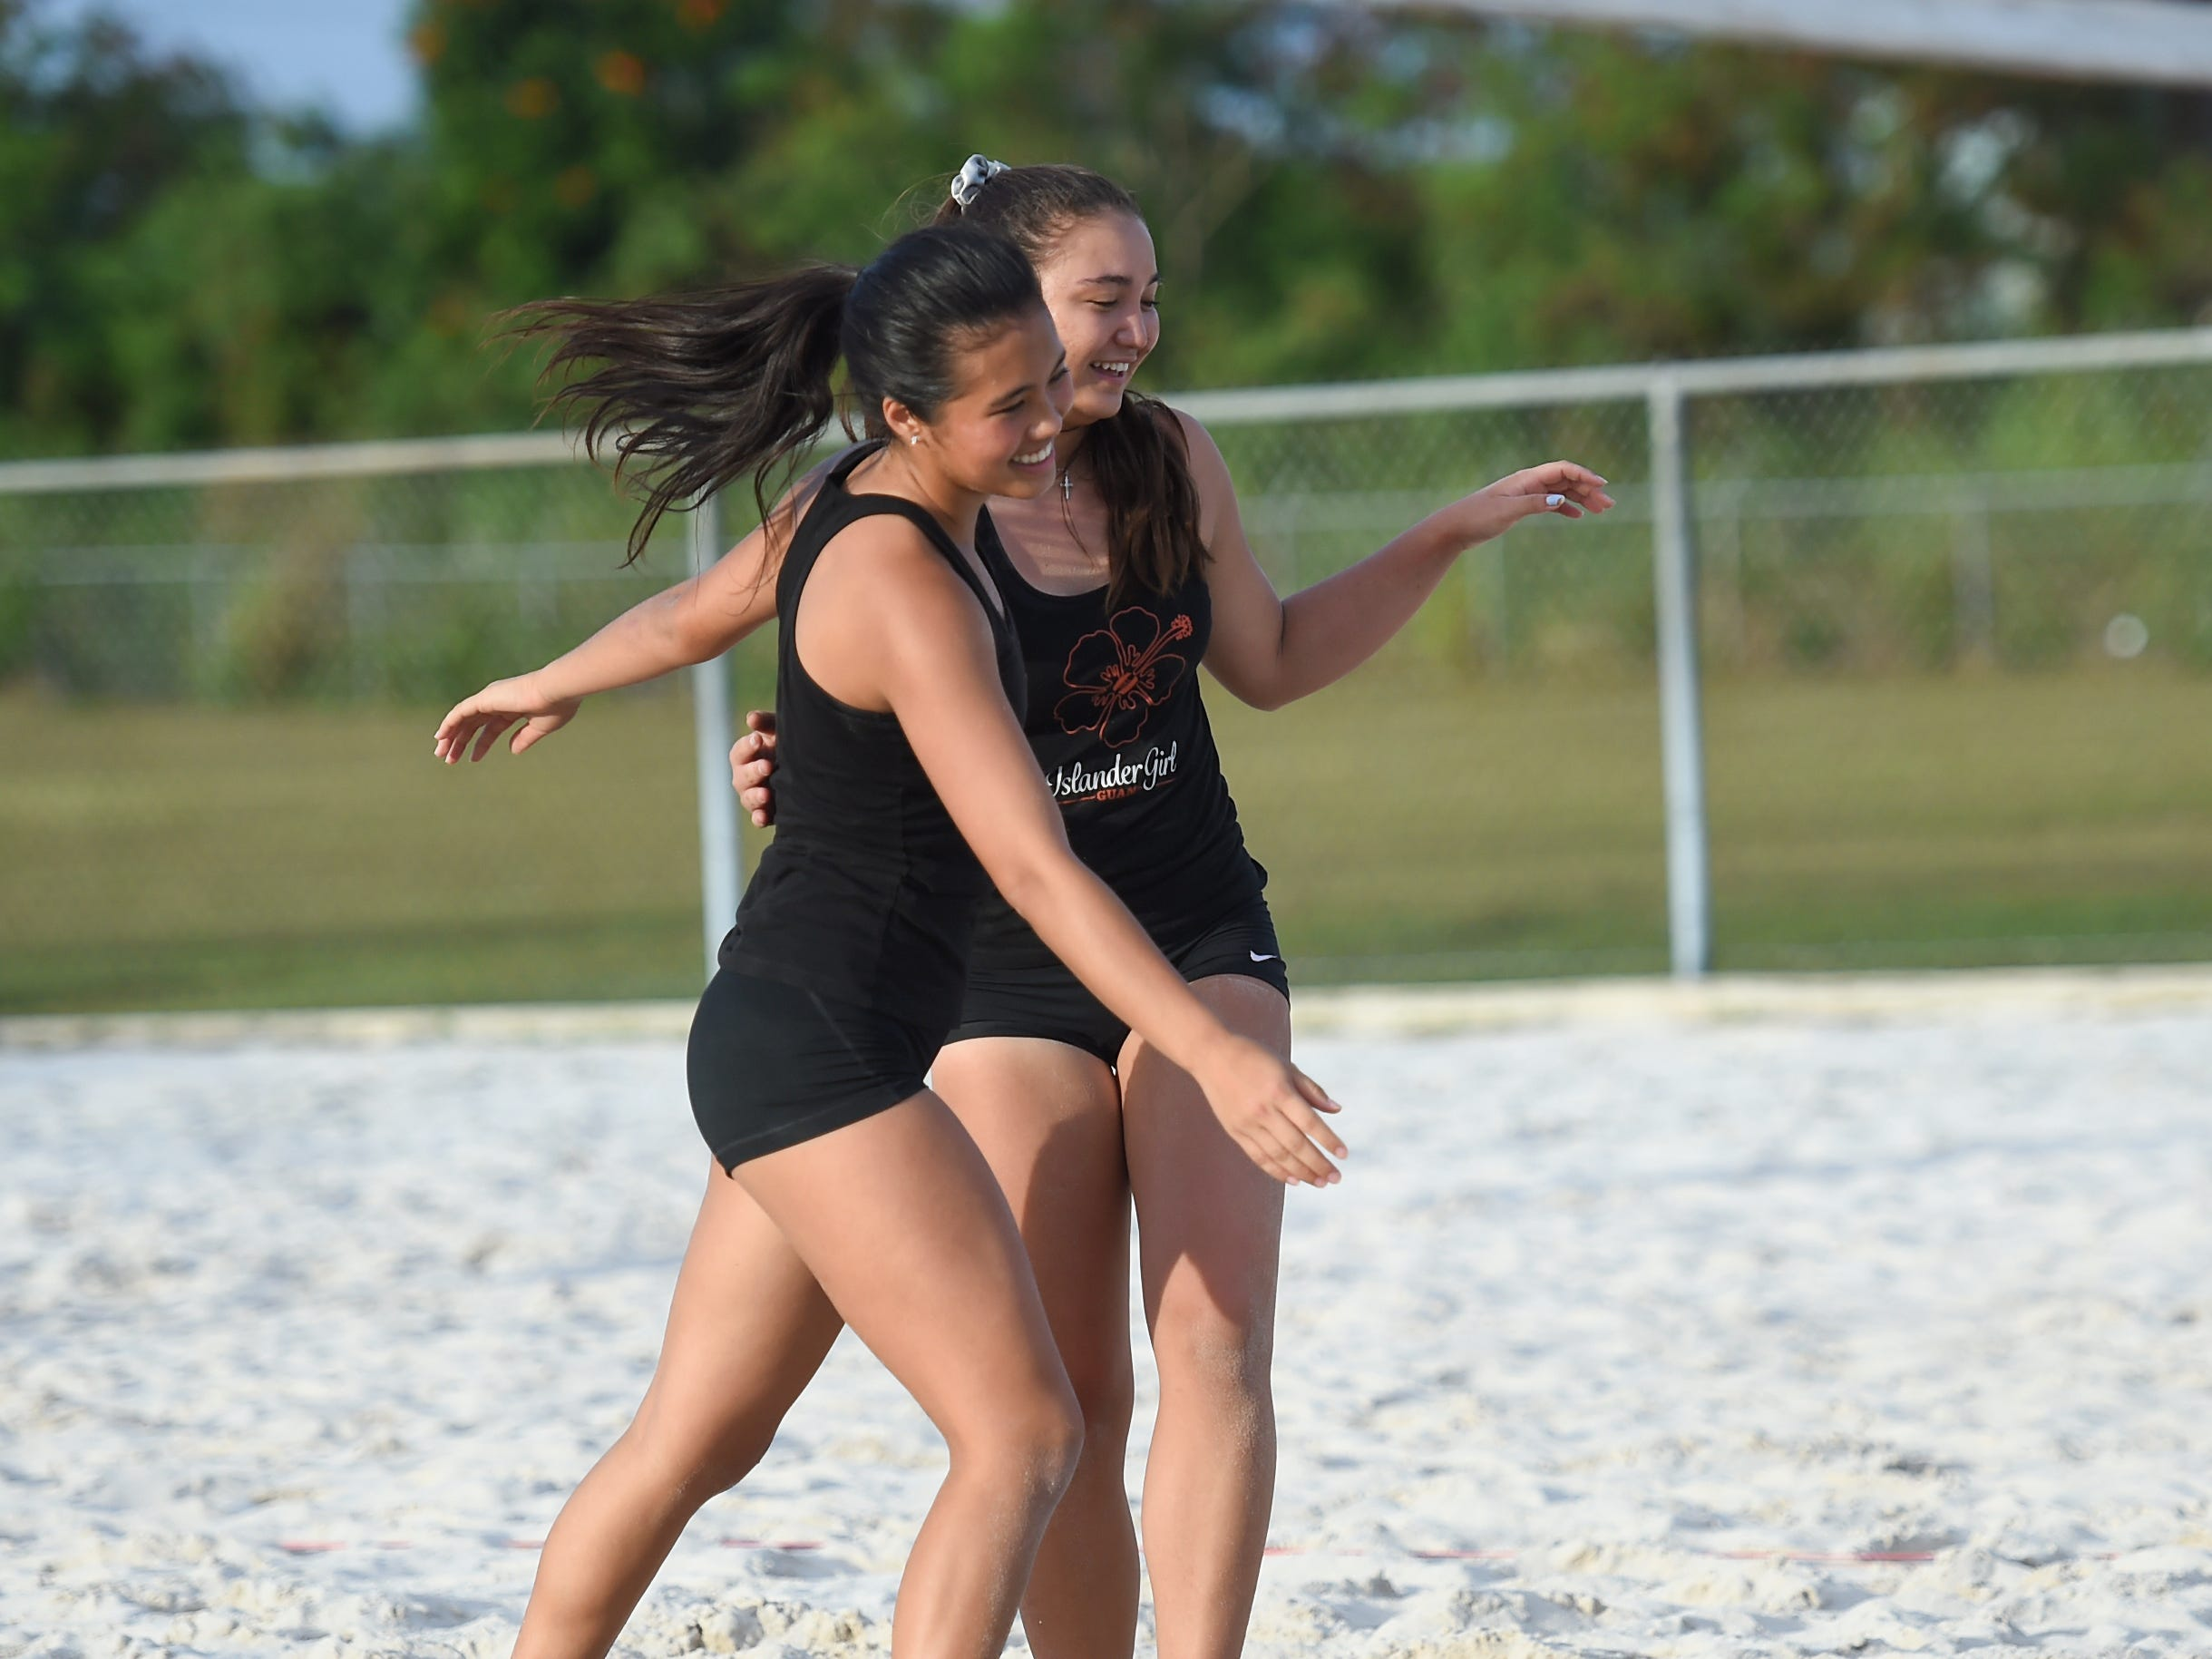 St. John's White teammates Tylee Shepherd, right, and Hallie Wigsten celebrate their IIAAG Beach Volleyball championship game win at the Guam Football Association National Training Center in Dededo, March 12, 2019.